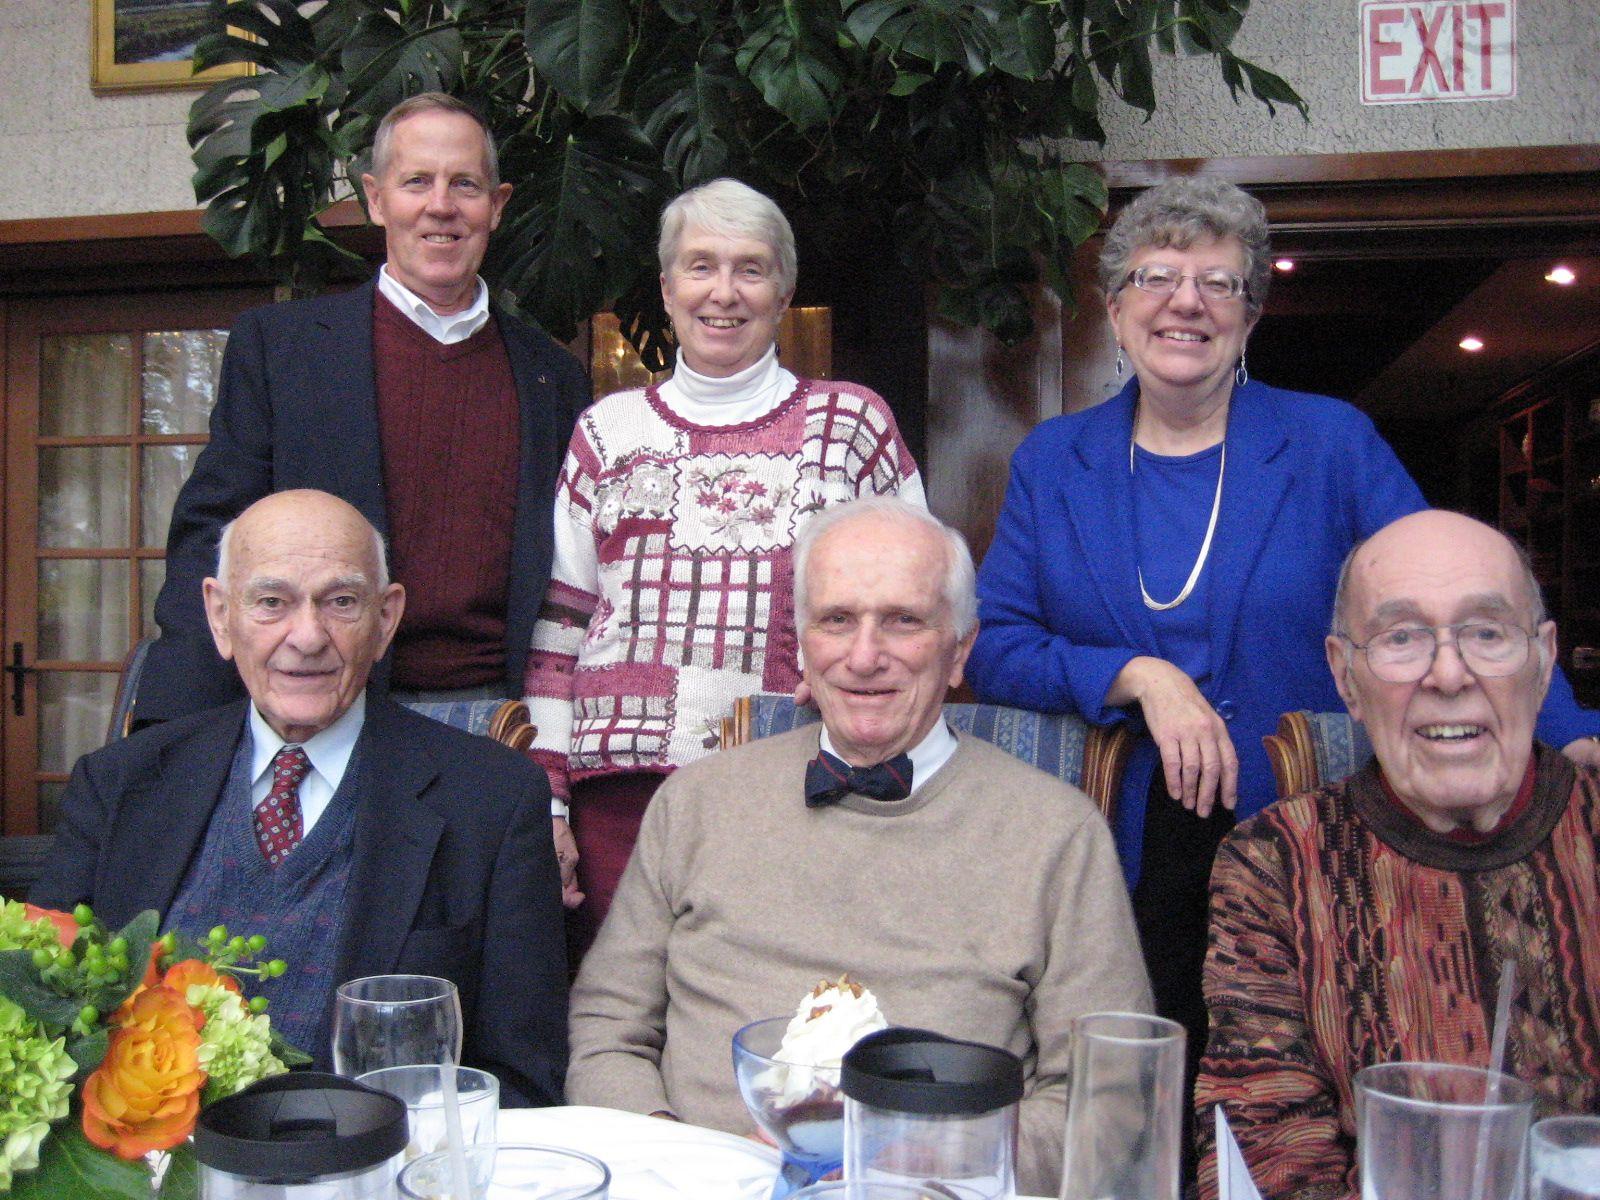 On November 7, 2012, a luncheon was held at the Daniel Webster House in Sandwich. Standing: Former faculty member Ted Burt, Eileen Burt, Connie Bickford. Seated: Dick Wilson '48, Rick Withington '42 and Art Bickford '44.